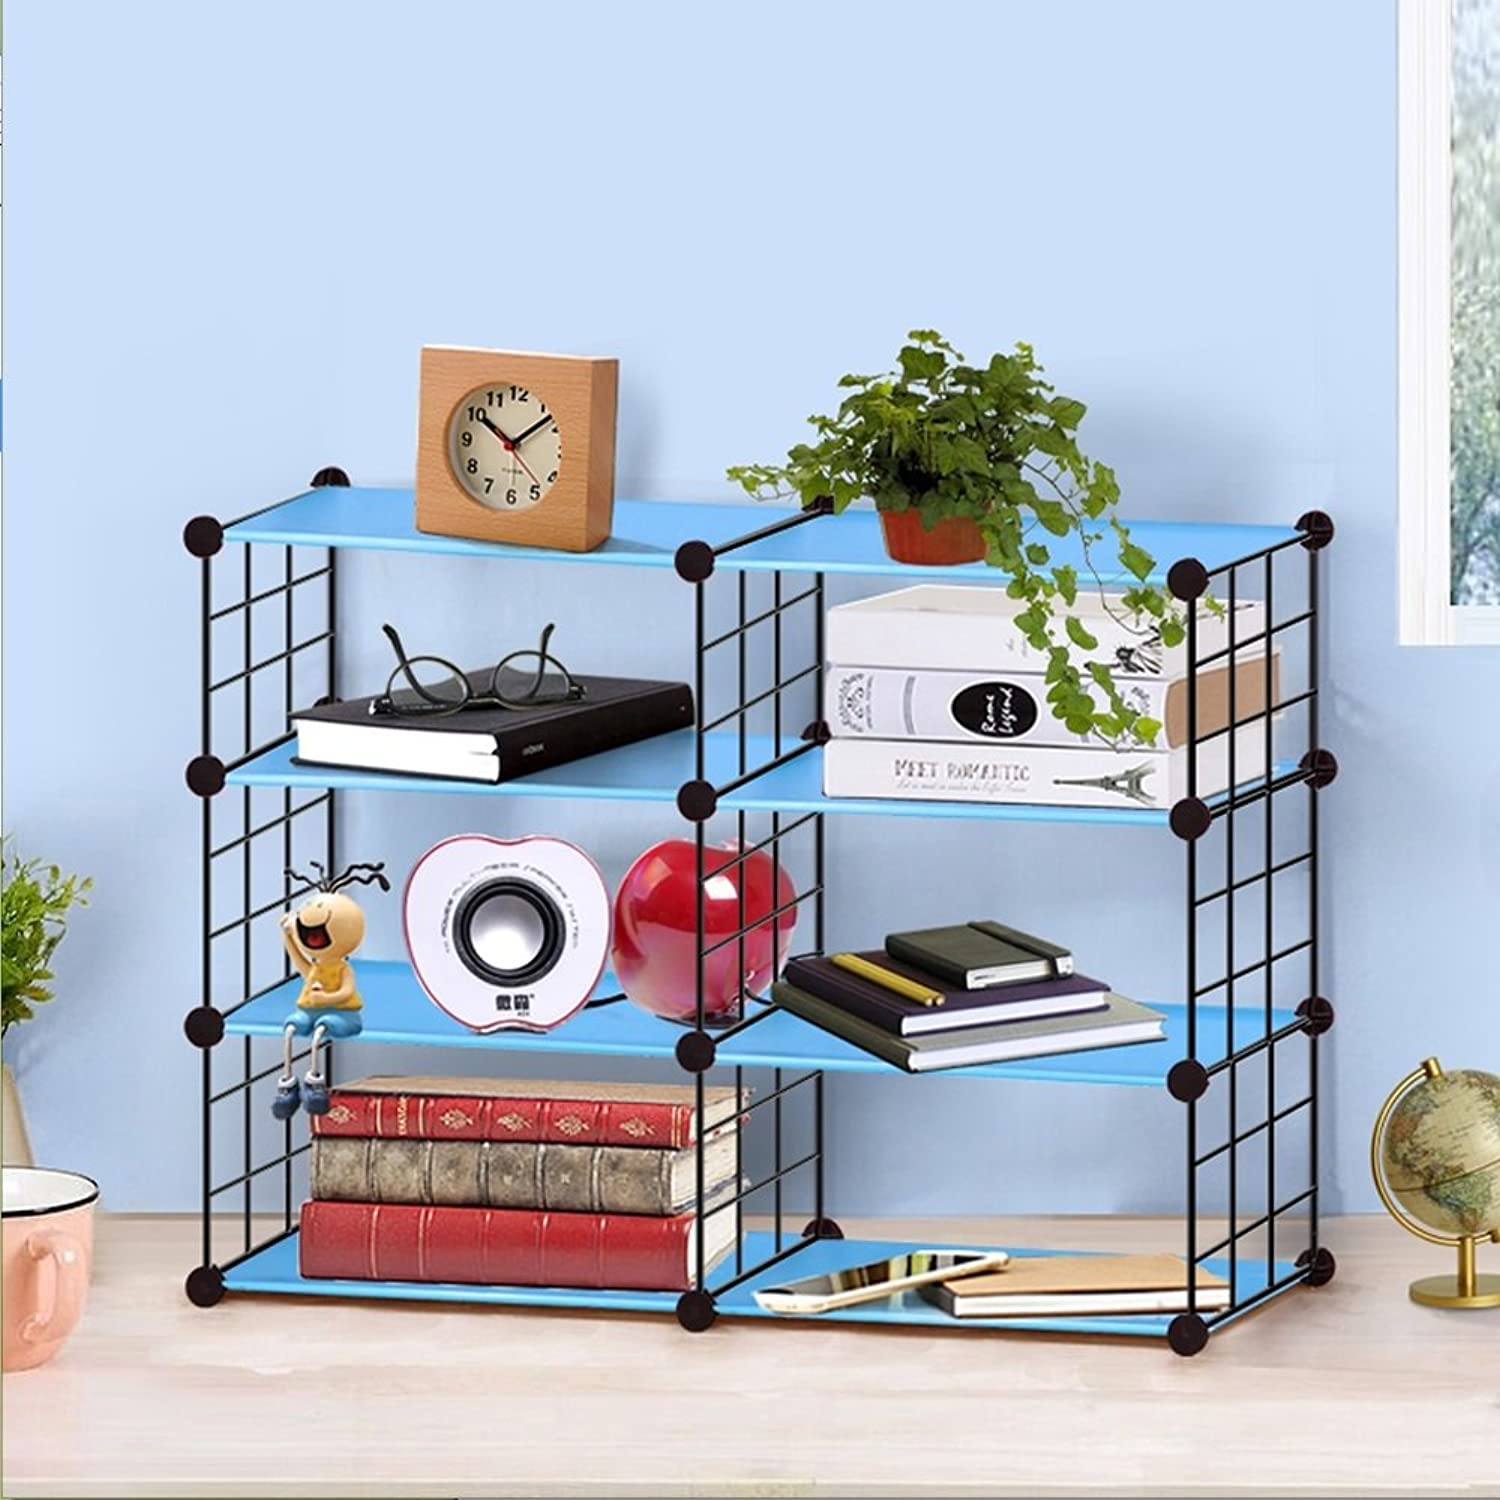 Multi-Use Modular Storage Shelving Rack, 5-Cube DIY Wire Grid Bookcase,Open Organiser Closet Cabinet for Books, Max Capacity 20kg Per Cube, bluee (Size   4 Floors 2 Columns)